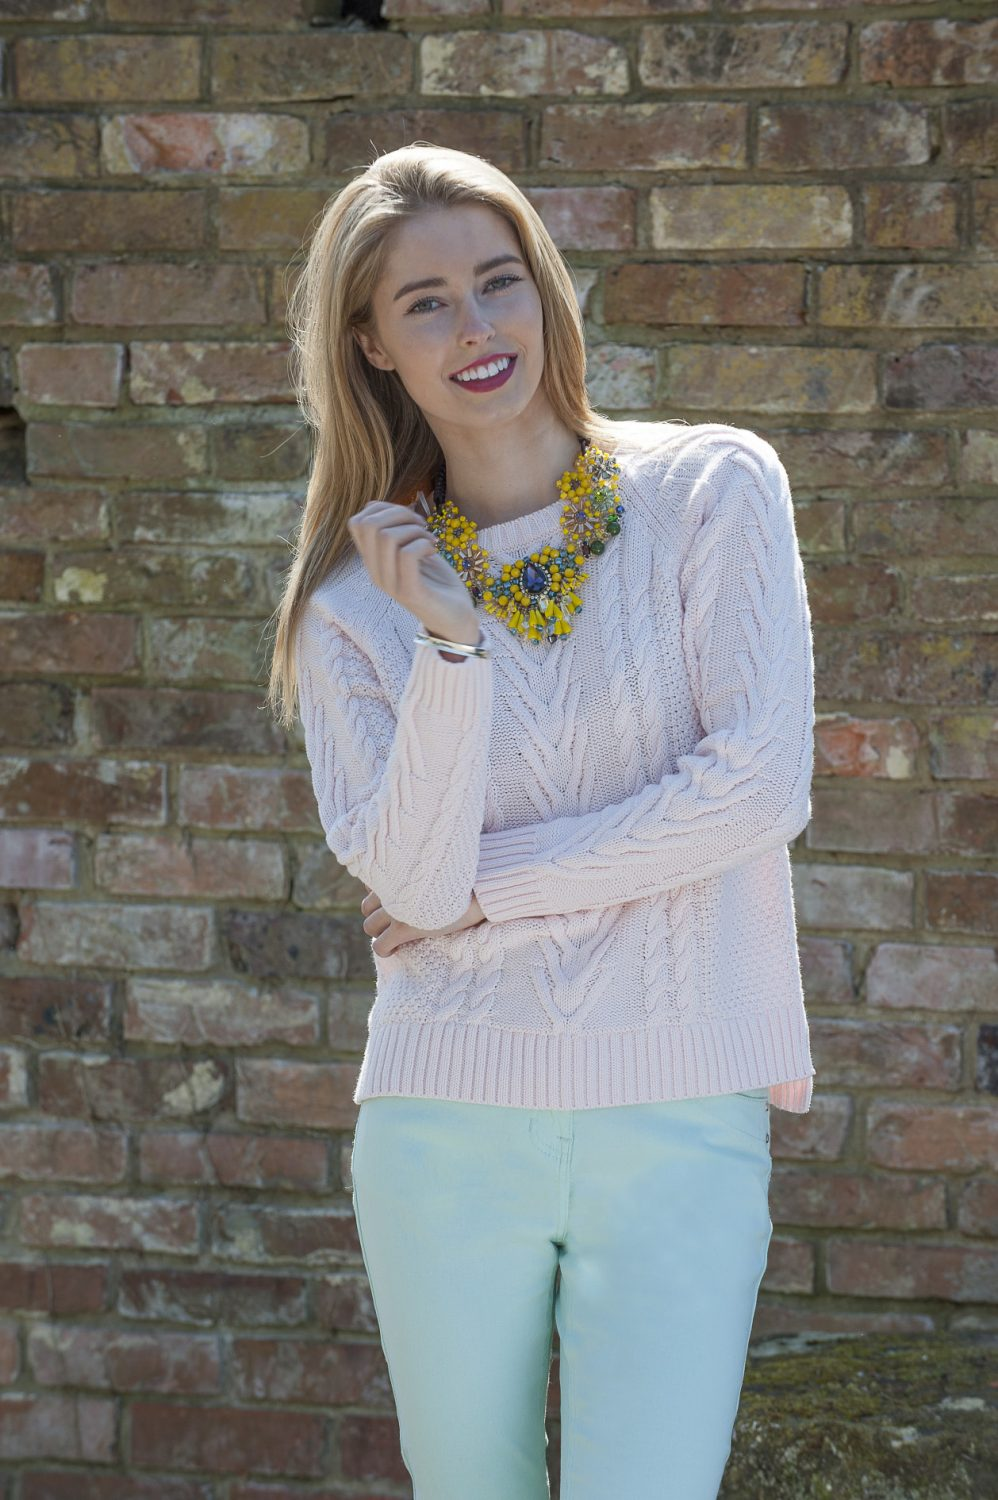 Second Female cable knit jumper, £72, Butterfly necklace, £120, Odyl, Cranbrook 01580 714907 www.odyl.co.uk; Intown Jeans, £58, Darcey, Heathfield & Lewes 0800 111 4974 www.darcey.co.uk; bracelet, Amy's own